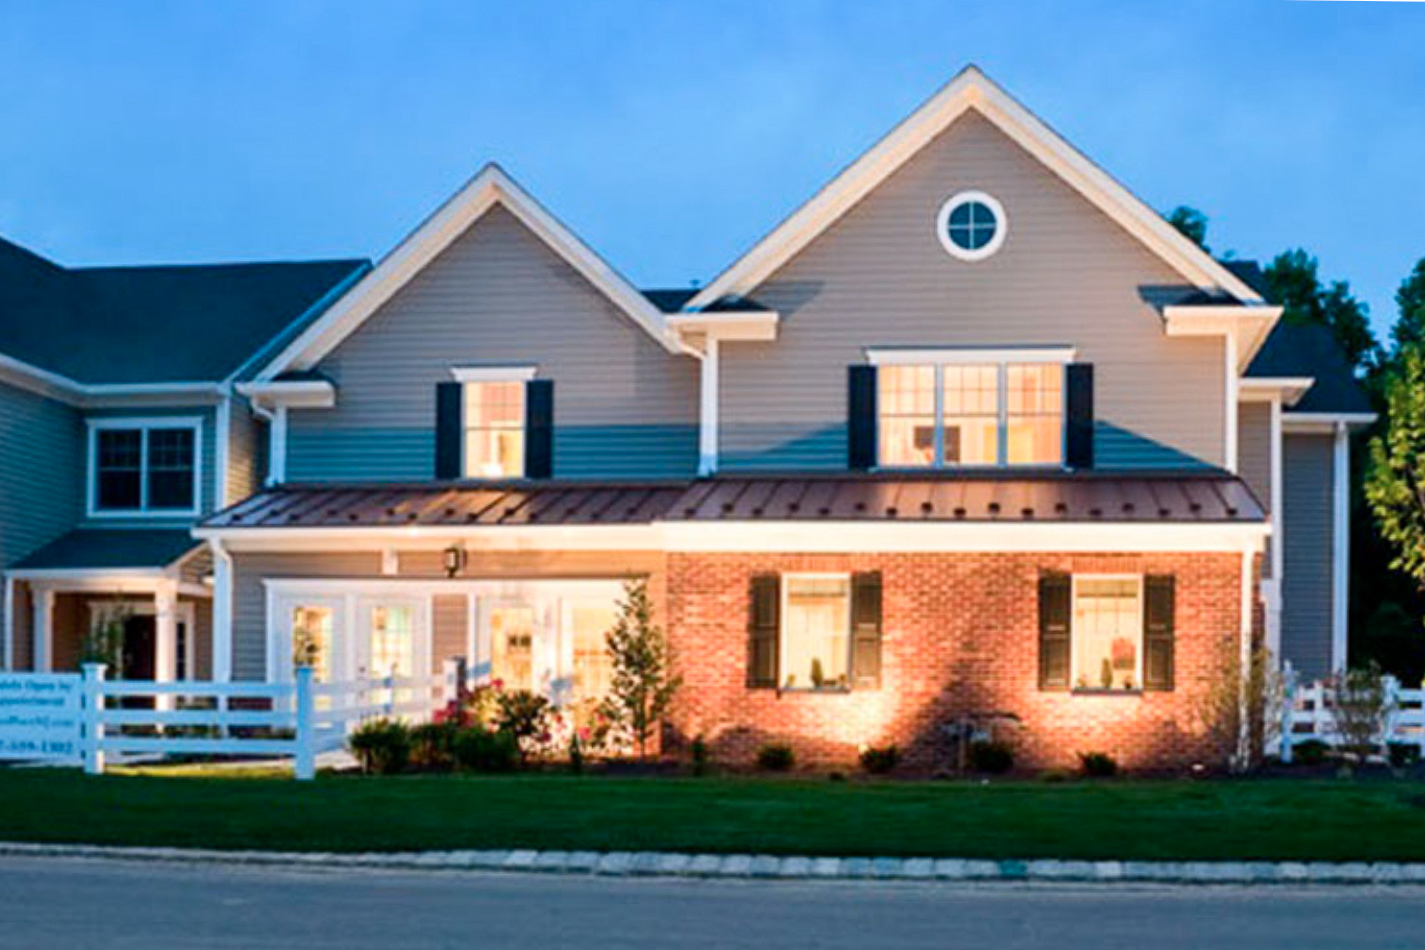 JAMES PLACE - LOCATION: MORRISTOWN, NJA gracious town home community featuring 23 family homes.